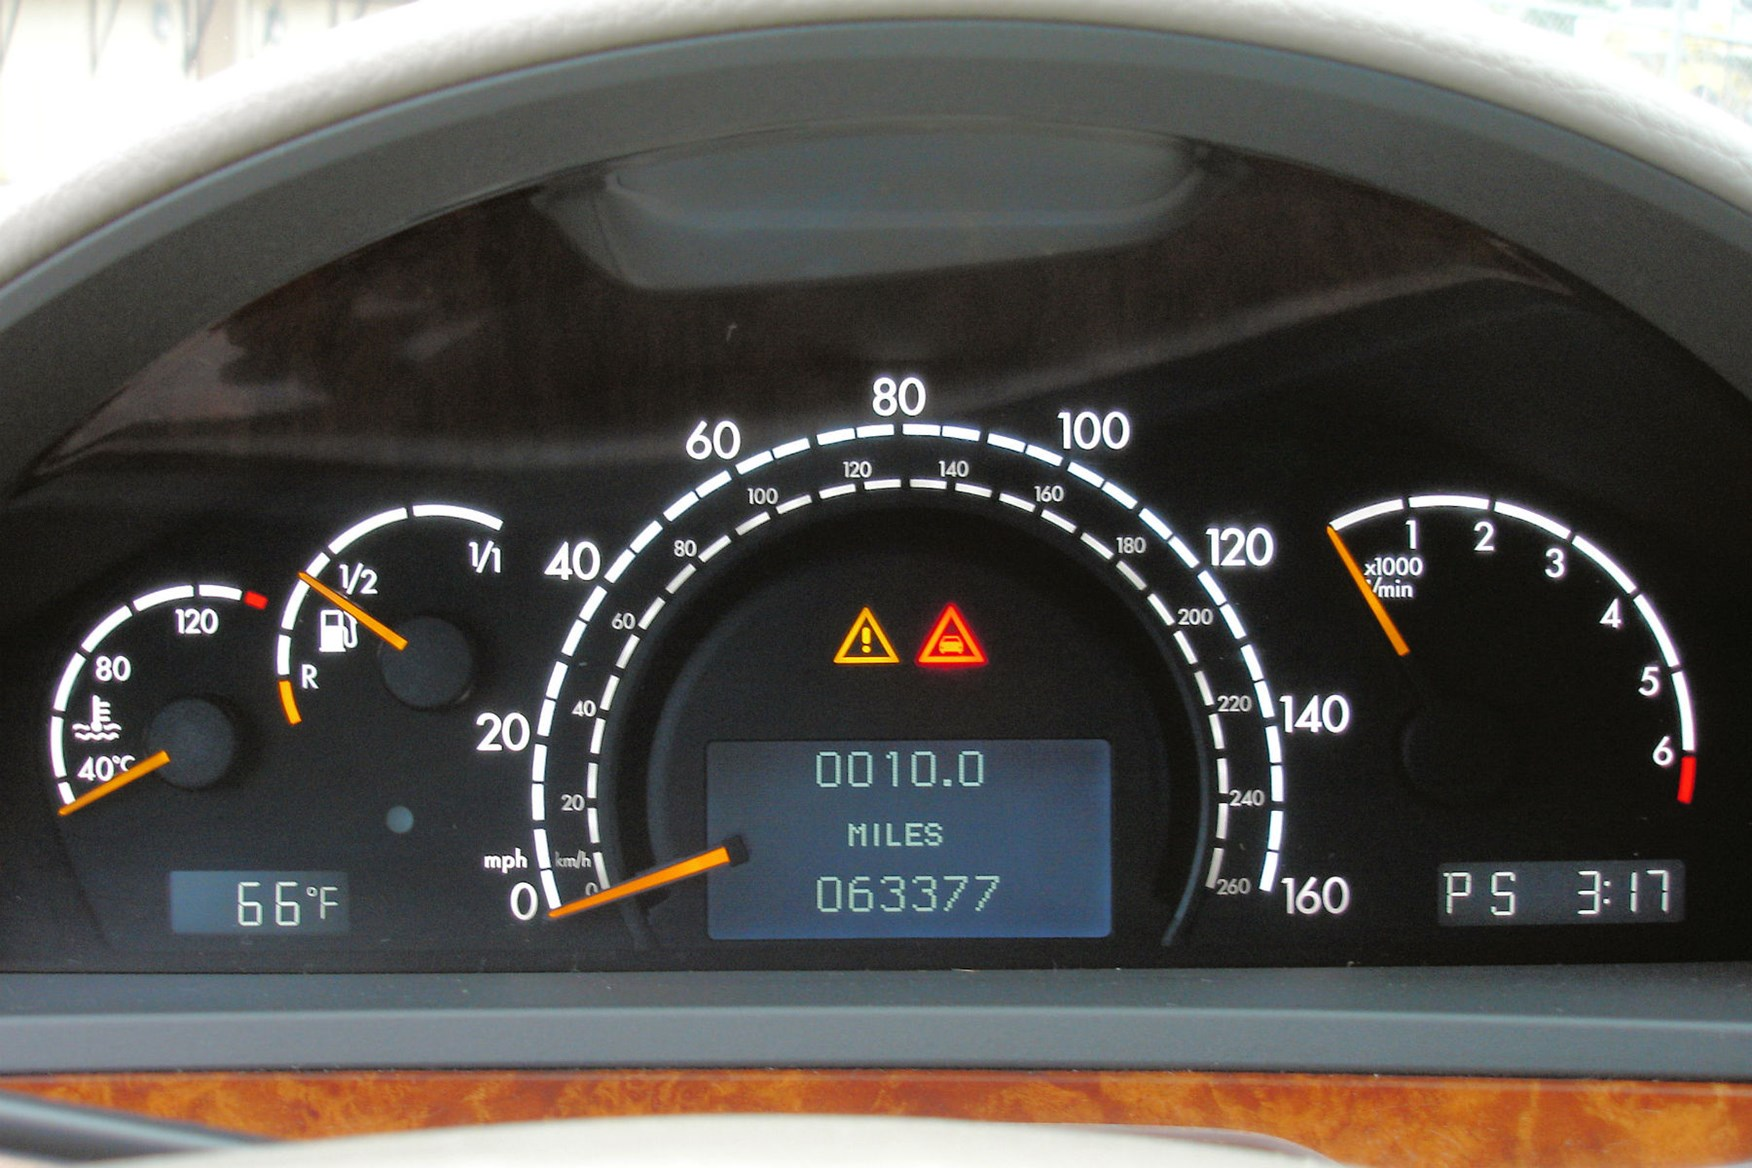 Excess mileage charges